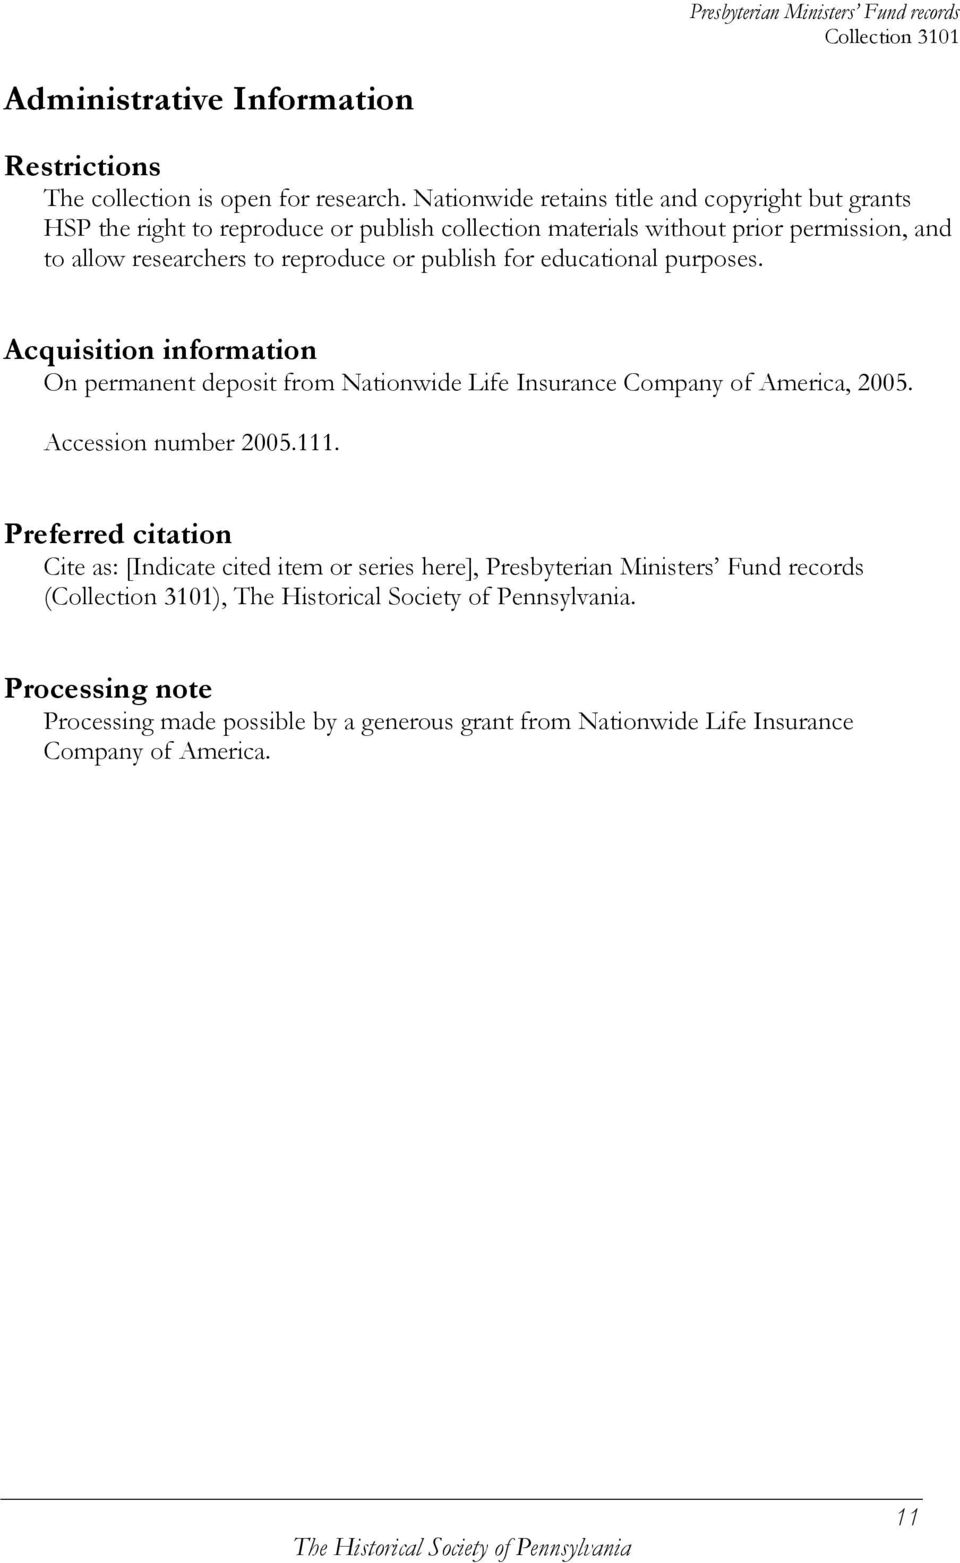 to reproduce or publish for educational purposes. Acquisition information On permanent deposit from Nationwide Life Insurance Company of America, 2005.